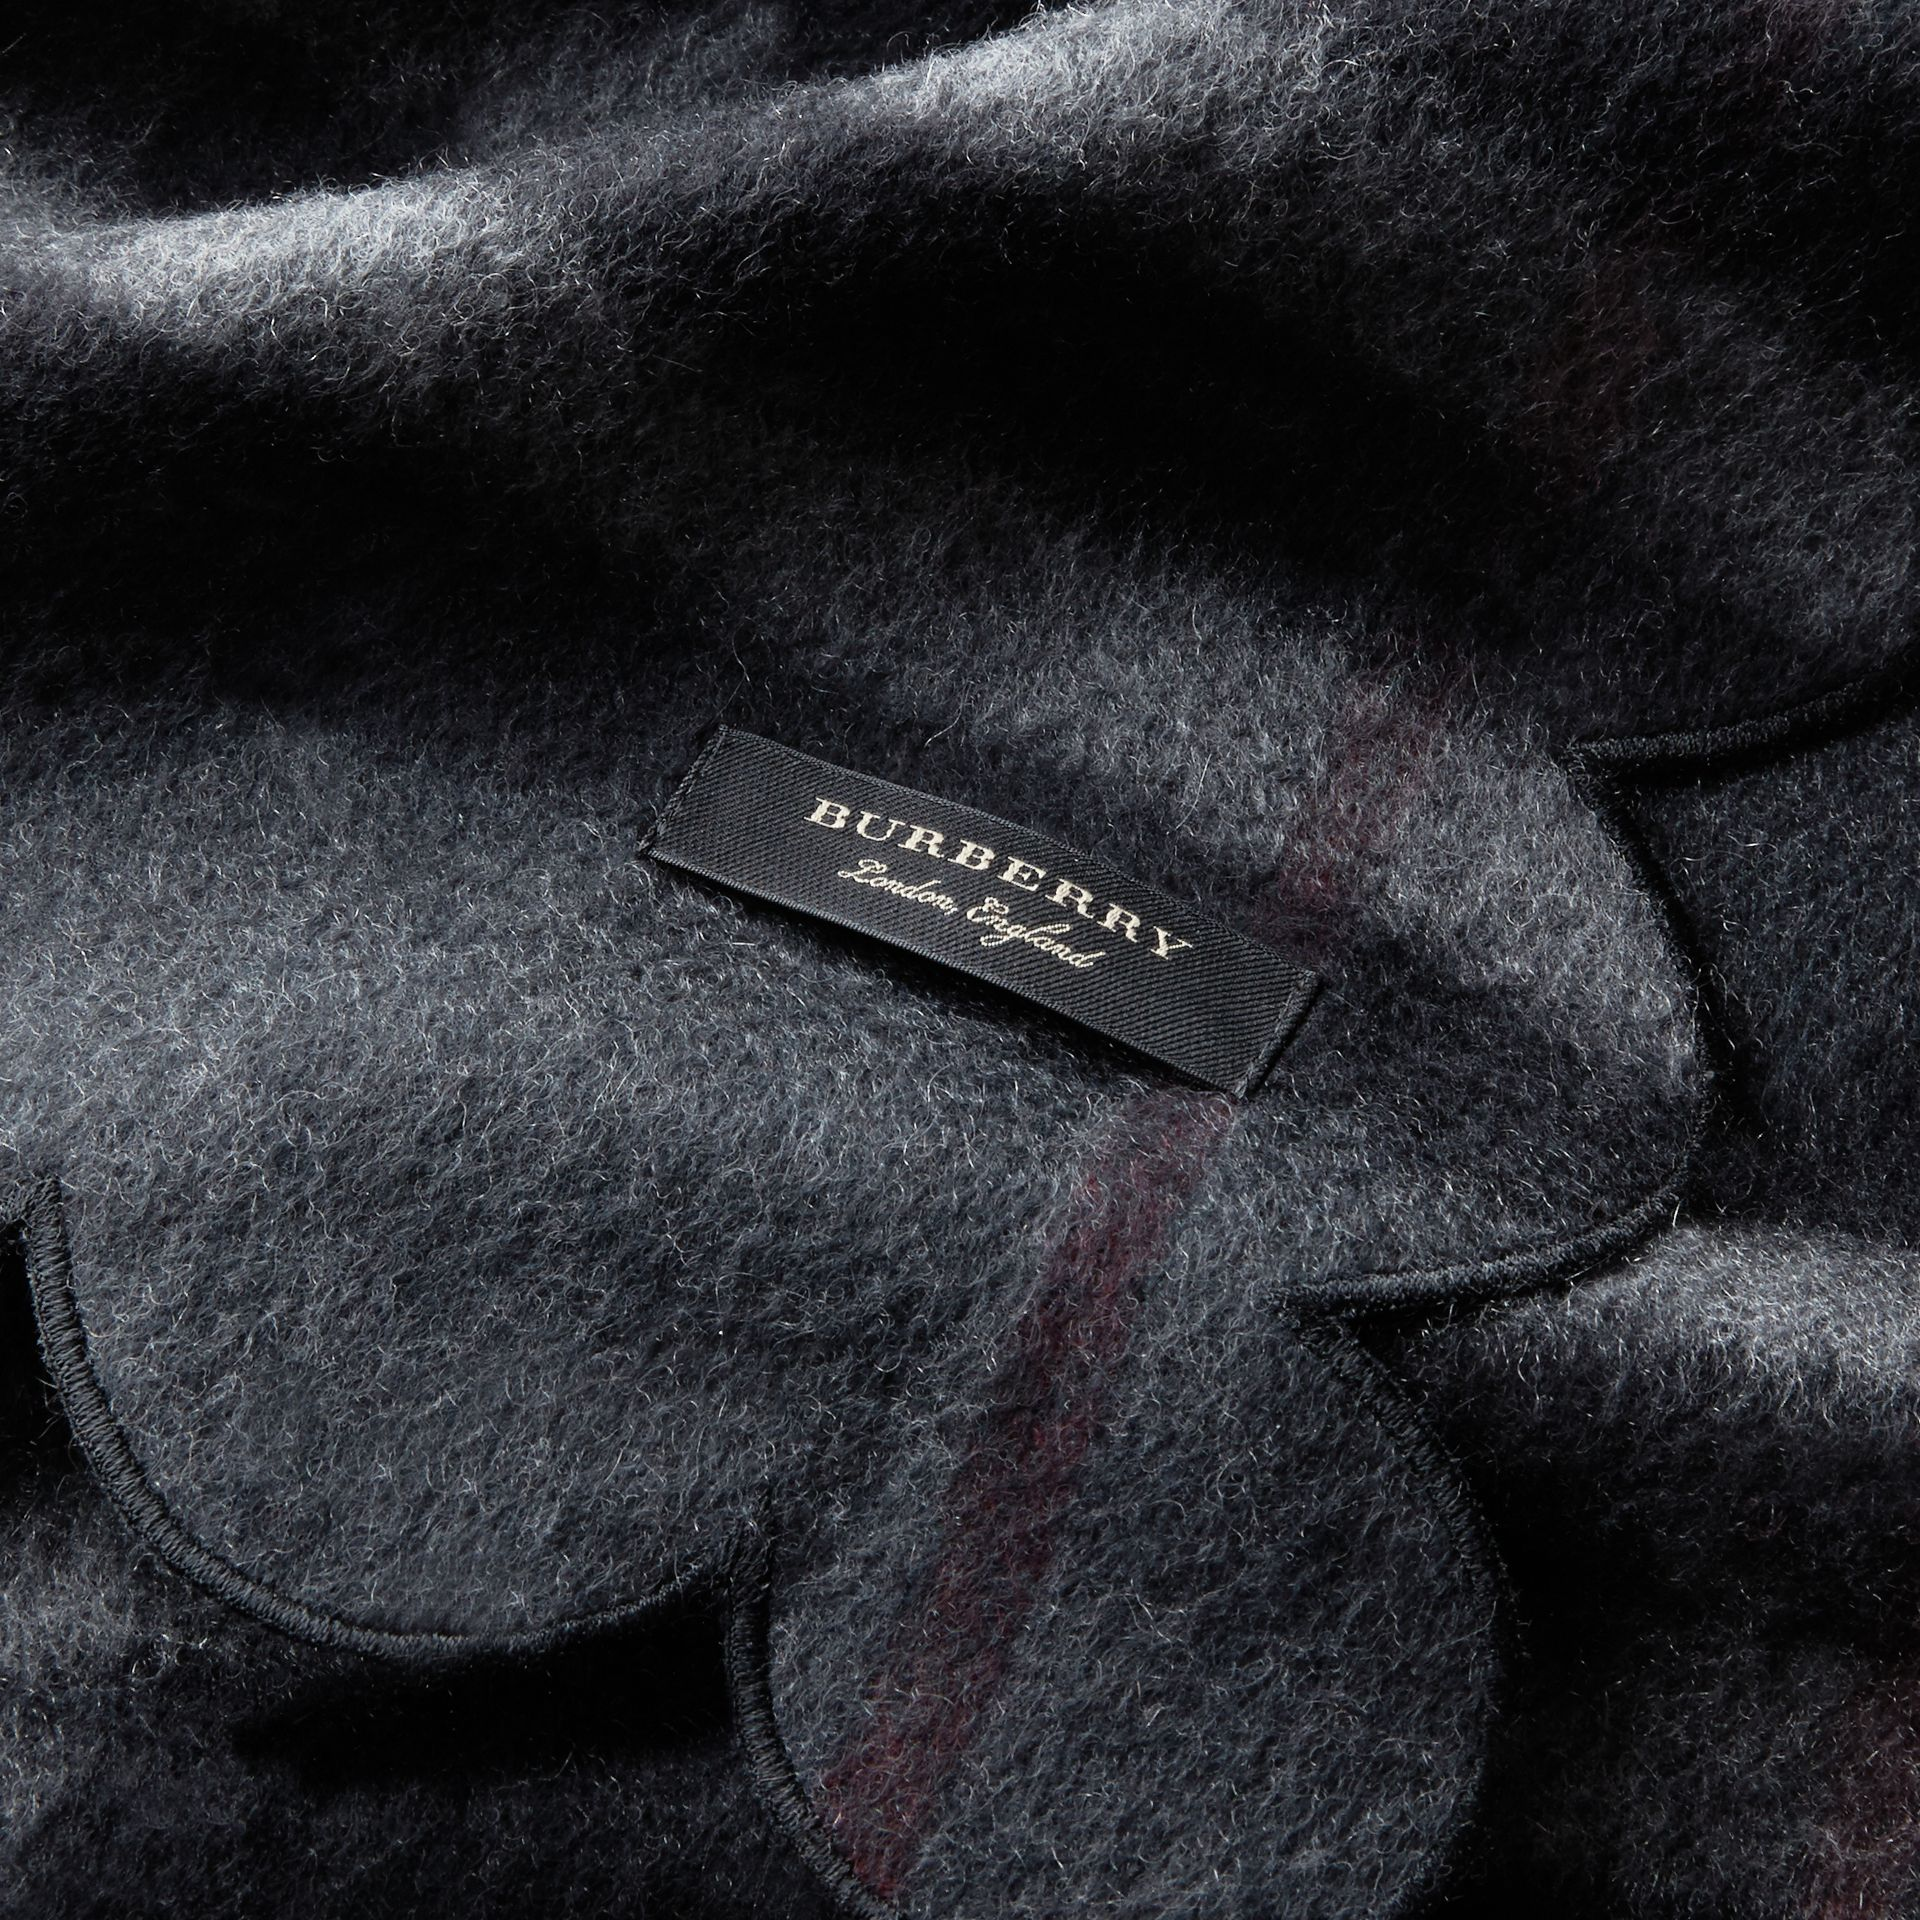 Scalloped Check Cashmere Scarf in Charcoal - Women | Burberry Australia - gallery image 2